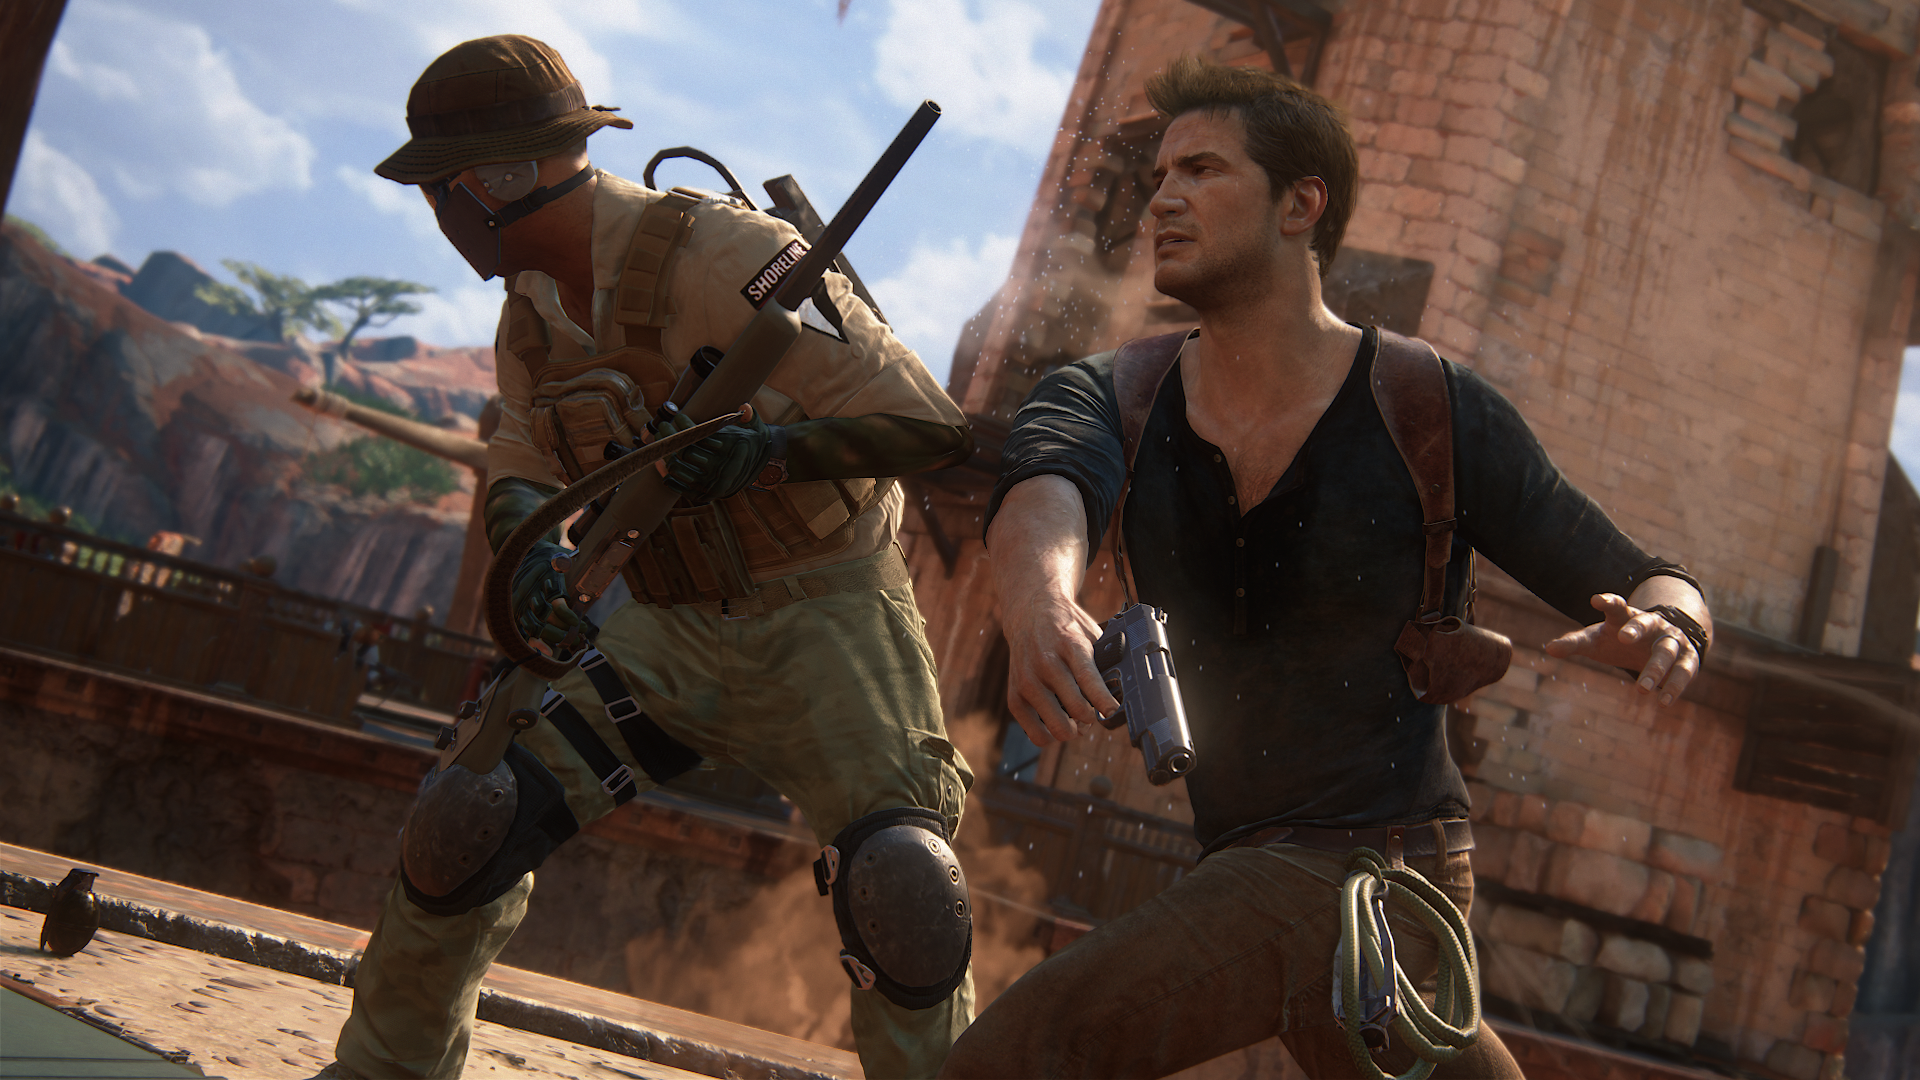 Winner - Uncharted 4: A Thief's End